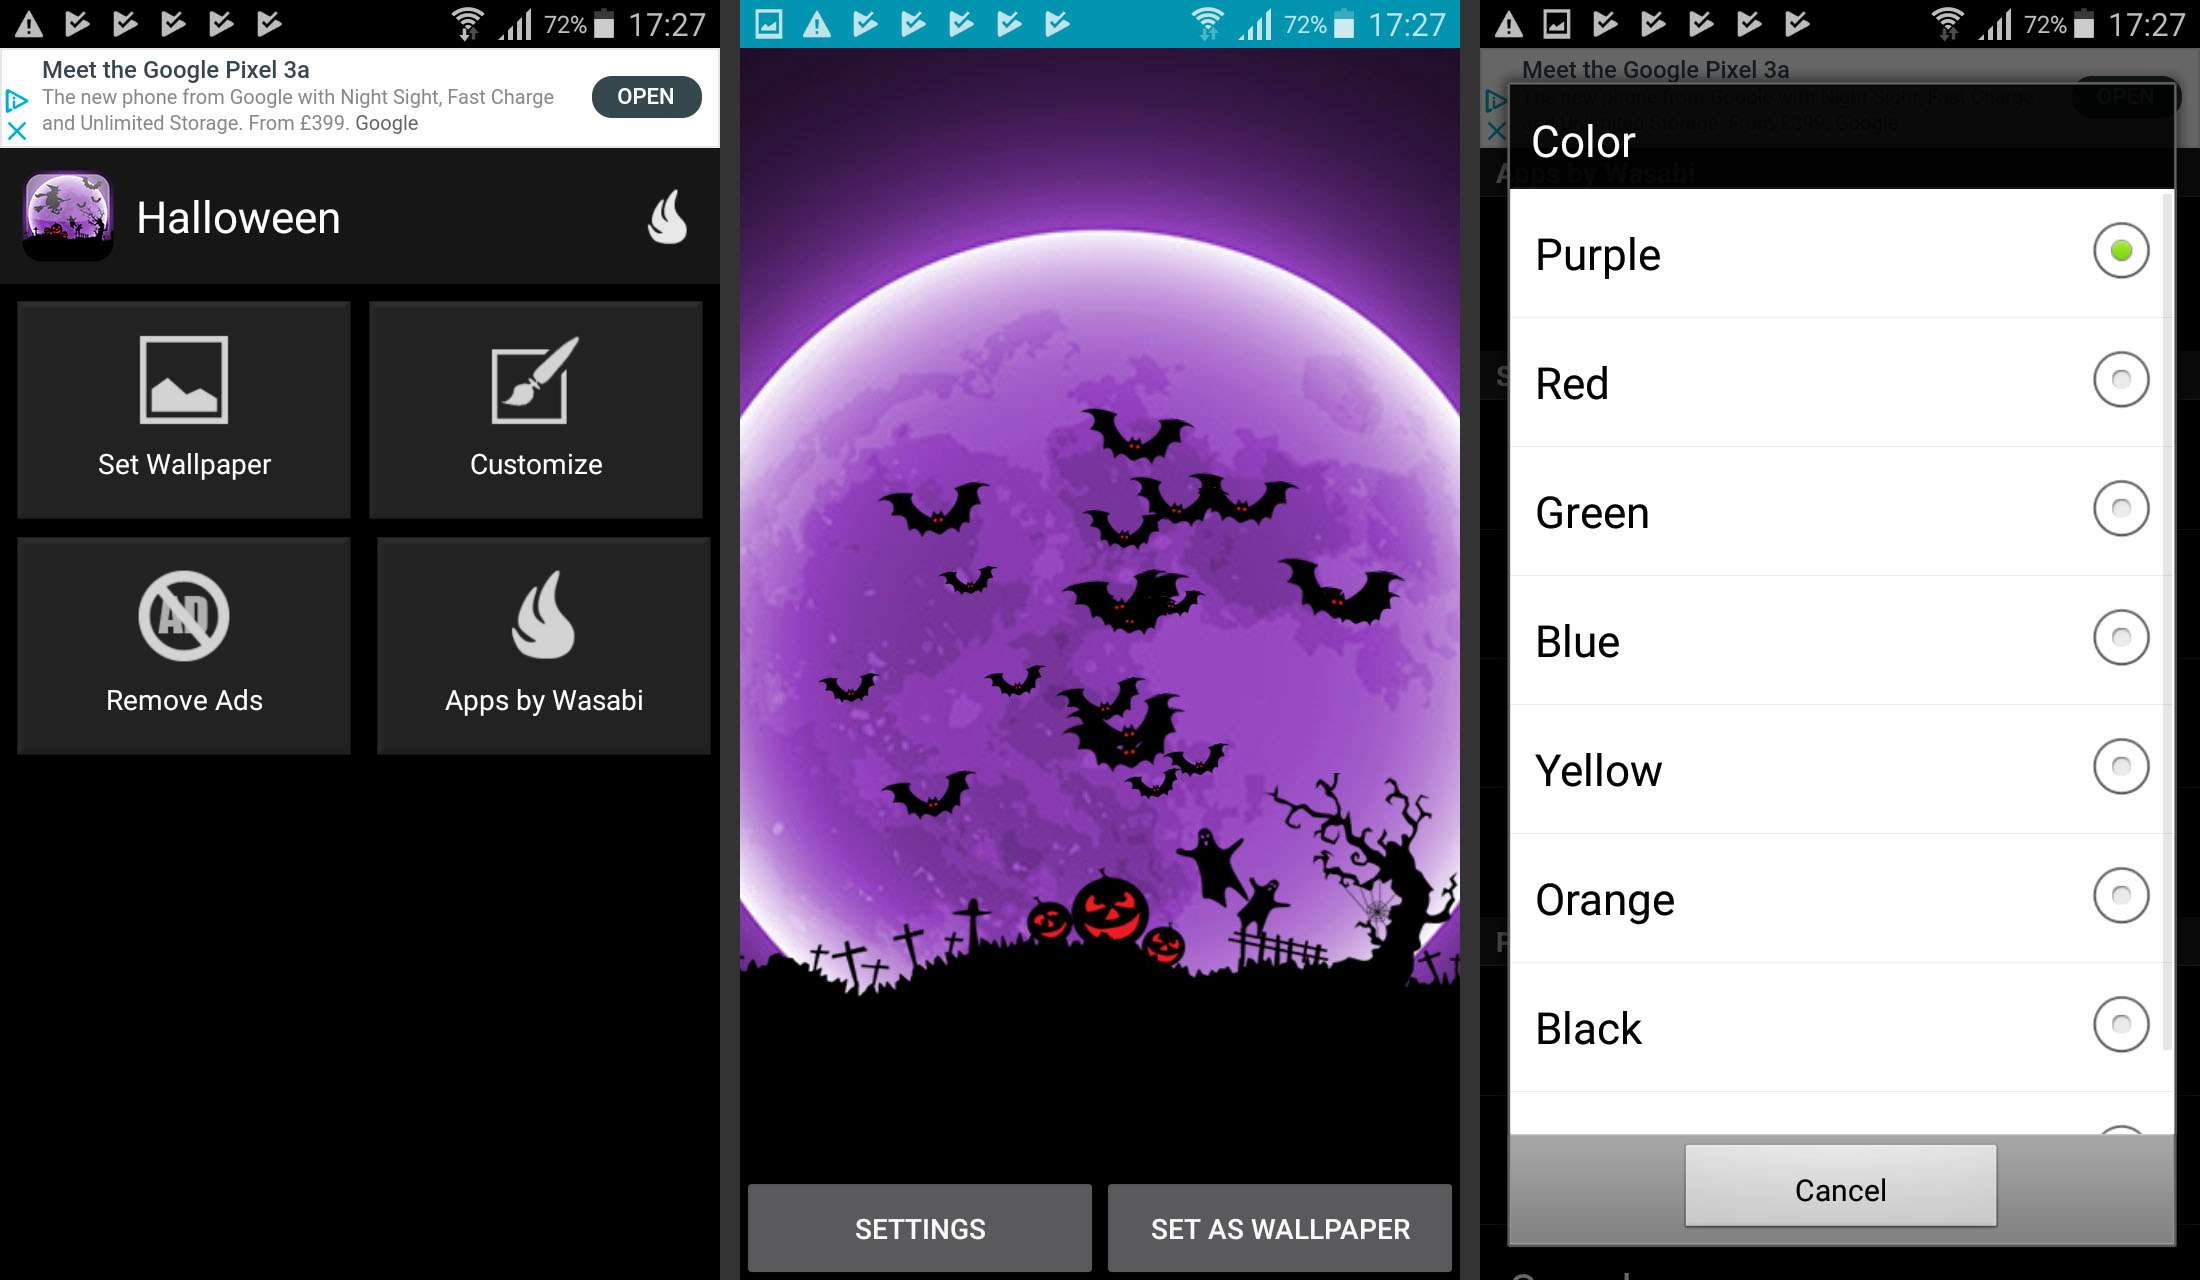 Halloween Wallpaper Graphic 2020 The Best Halloween Live Wallpaper for 2020